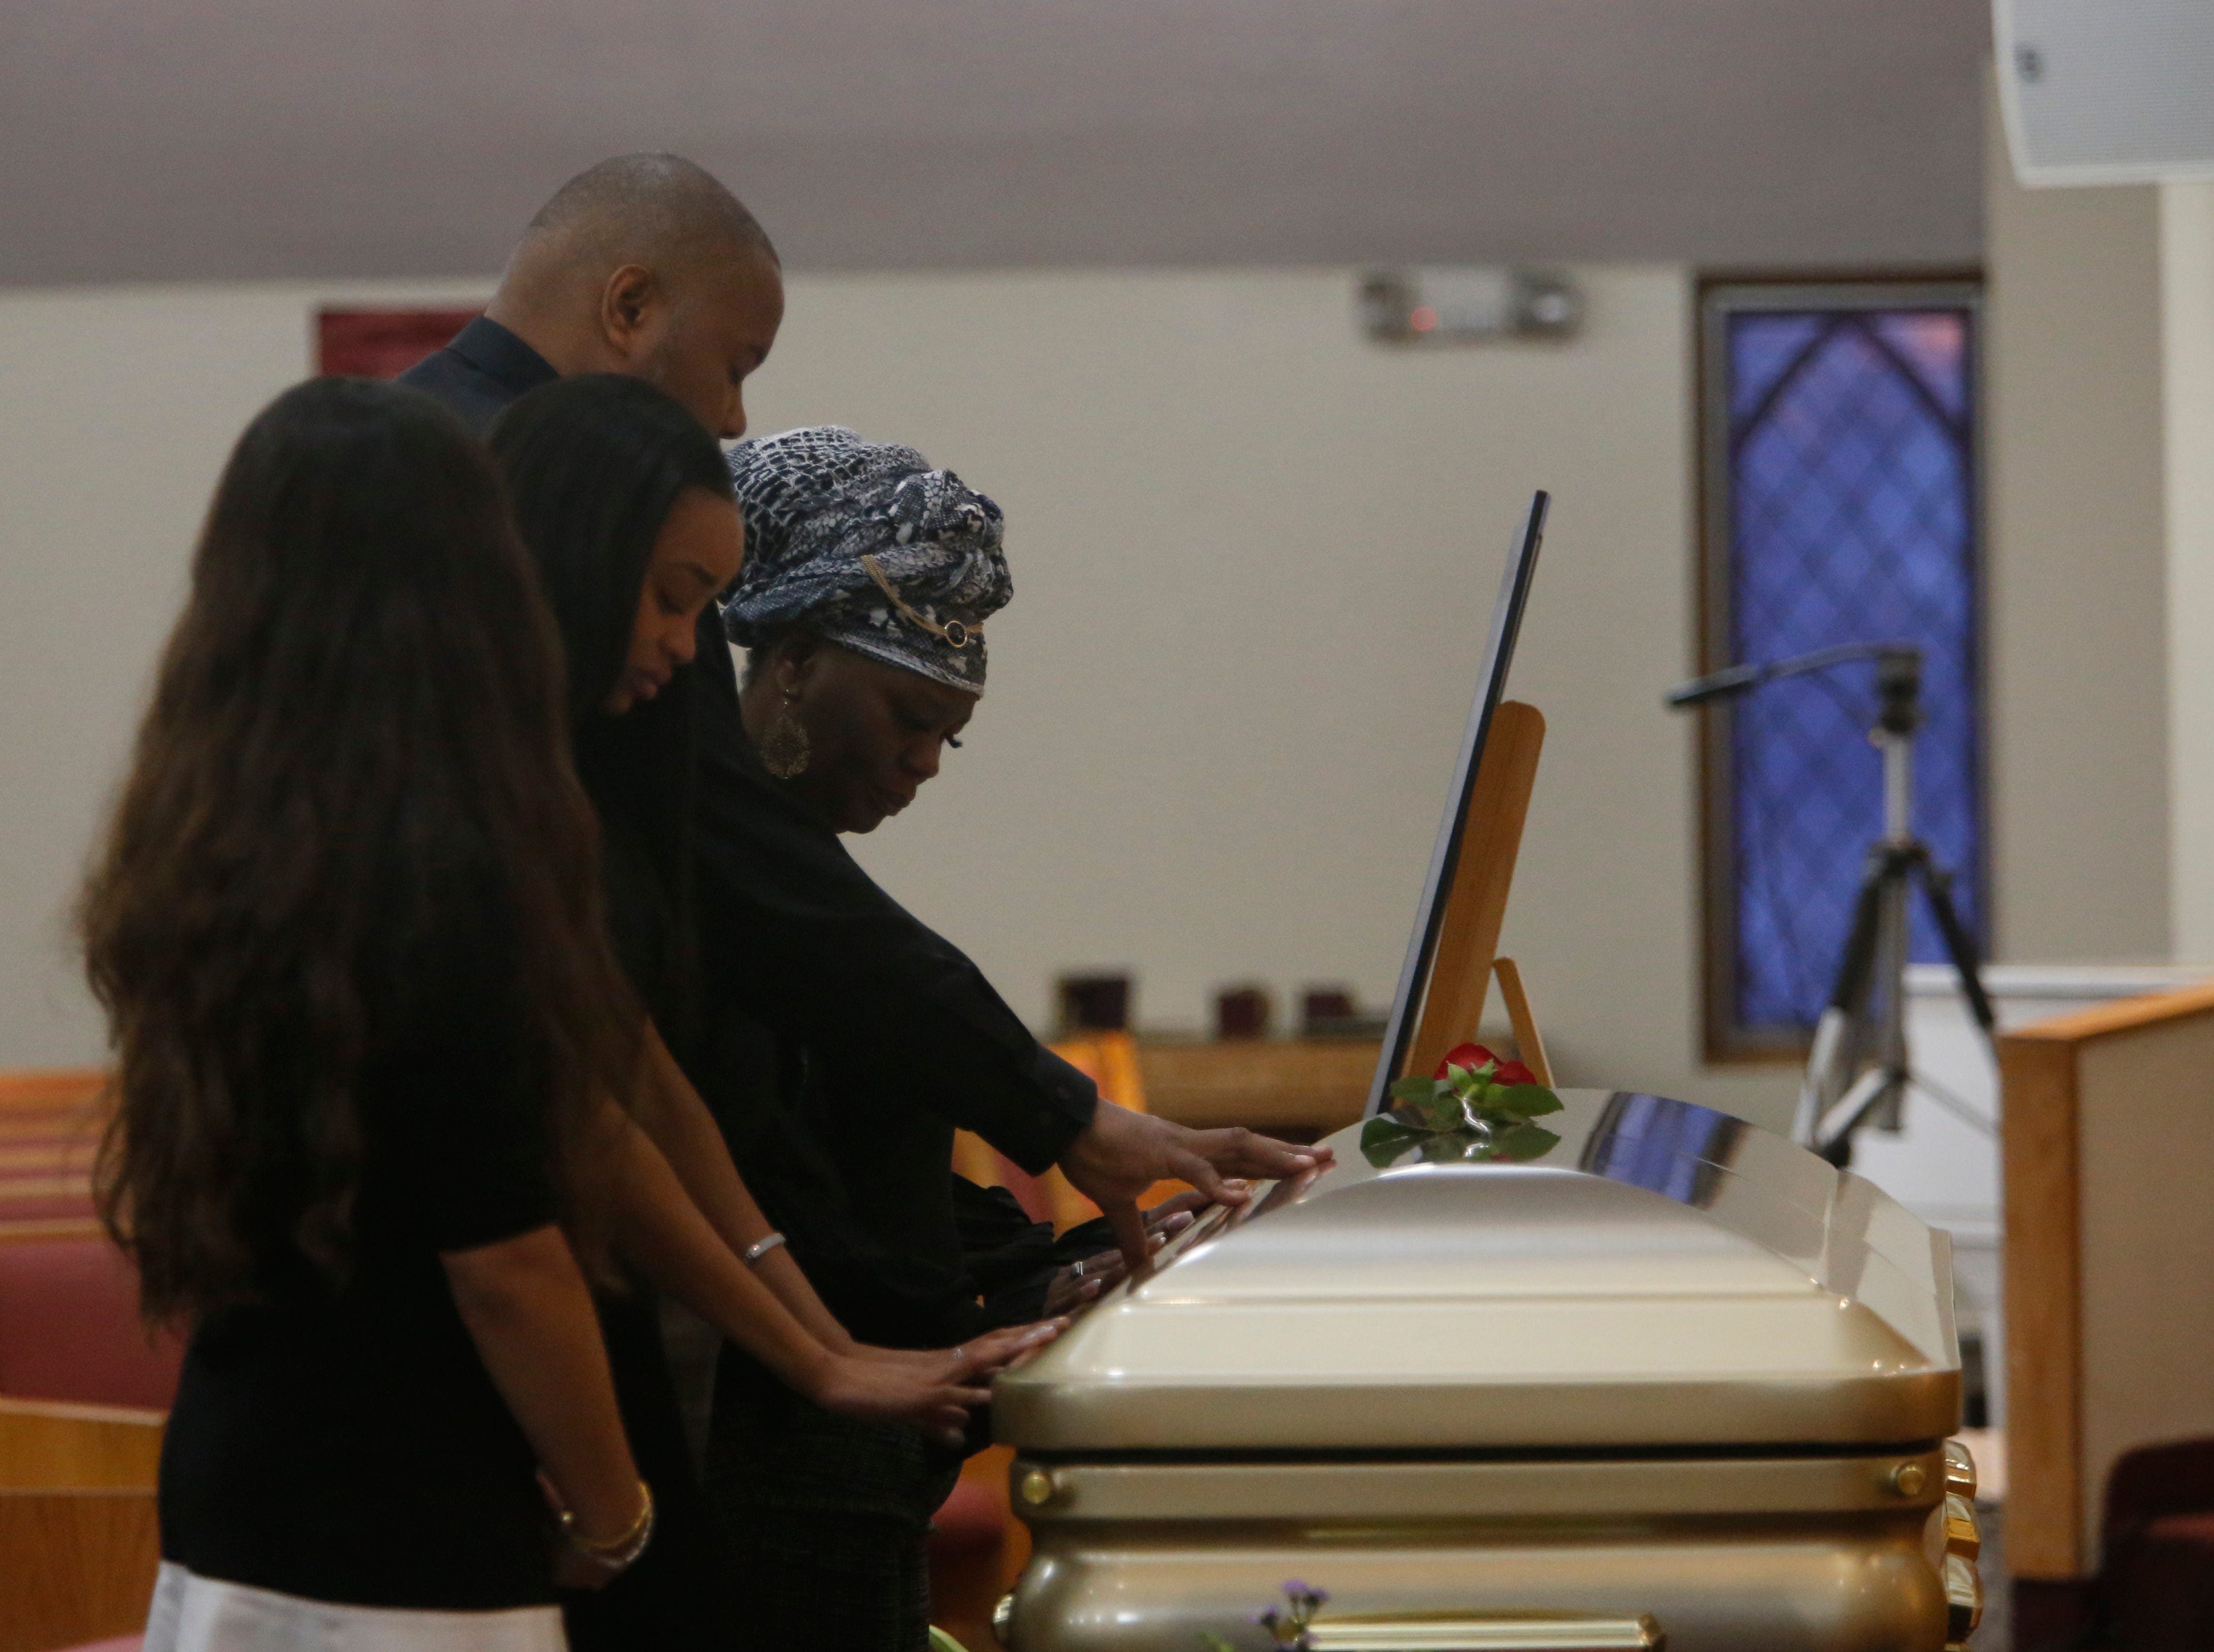 Friends & family mourn the loss of Jaquan Cesar during his funeral service at Beulah Baptist Church in the City of Poughkeepsie on February 22, 2019.